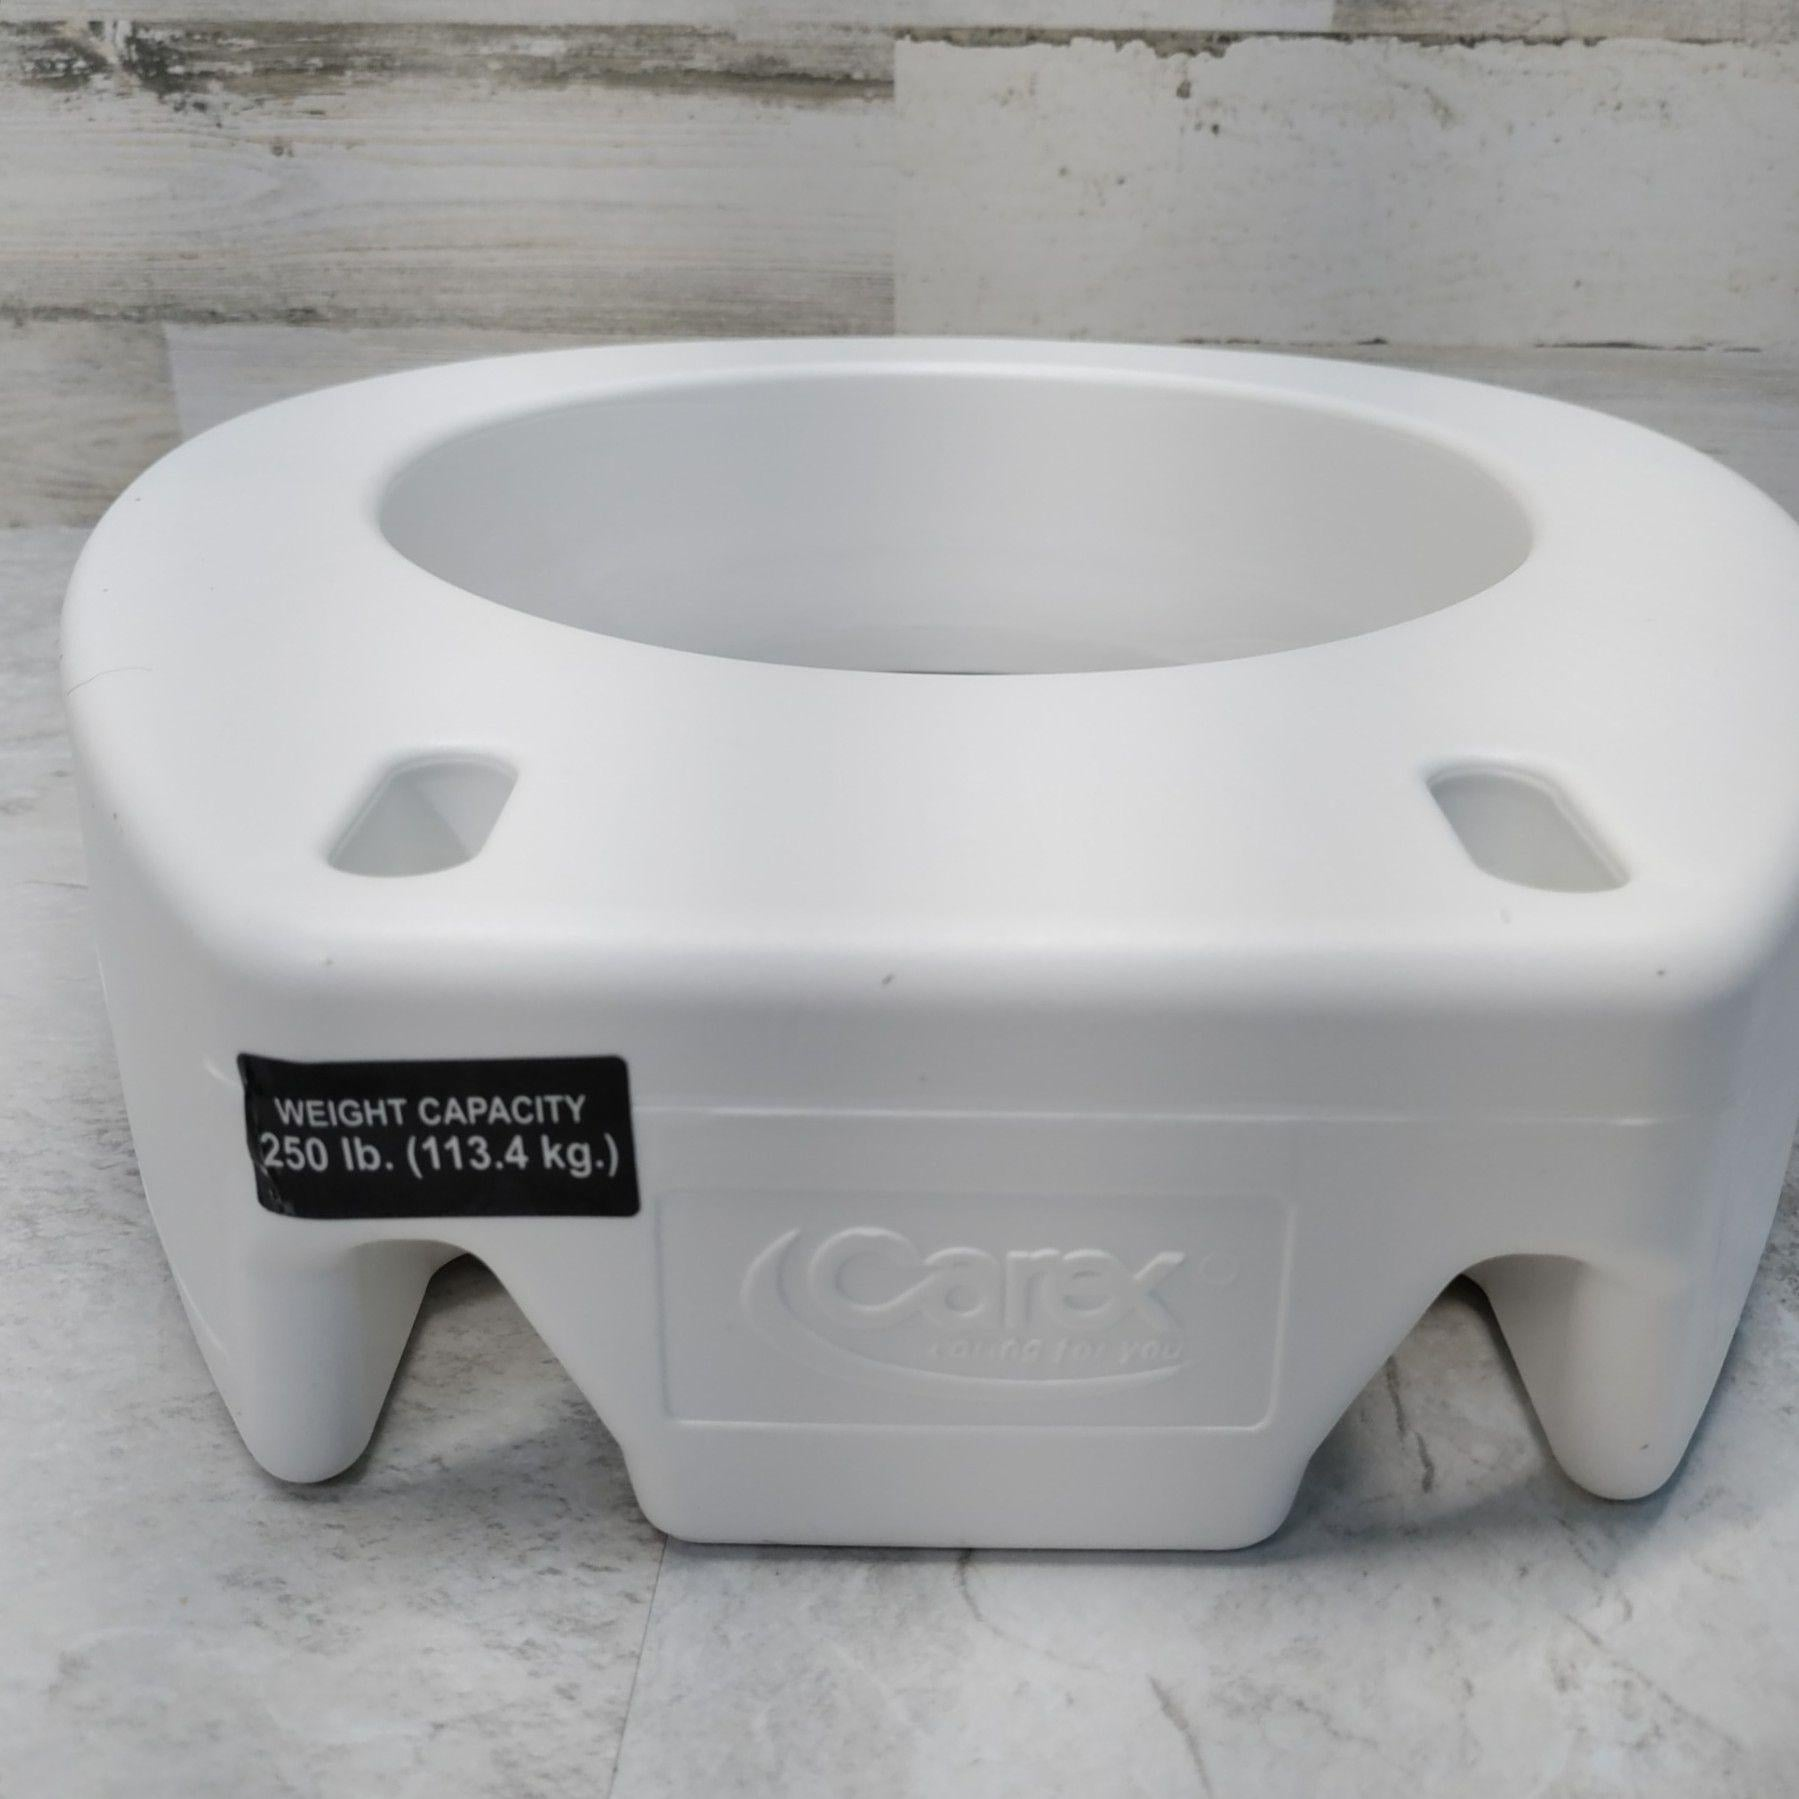 Carex 3.5 inch Toilet seat review